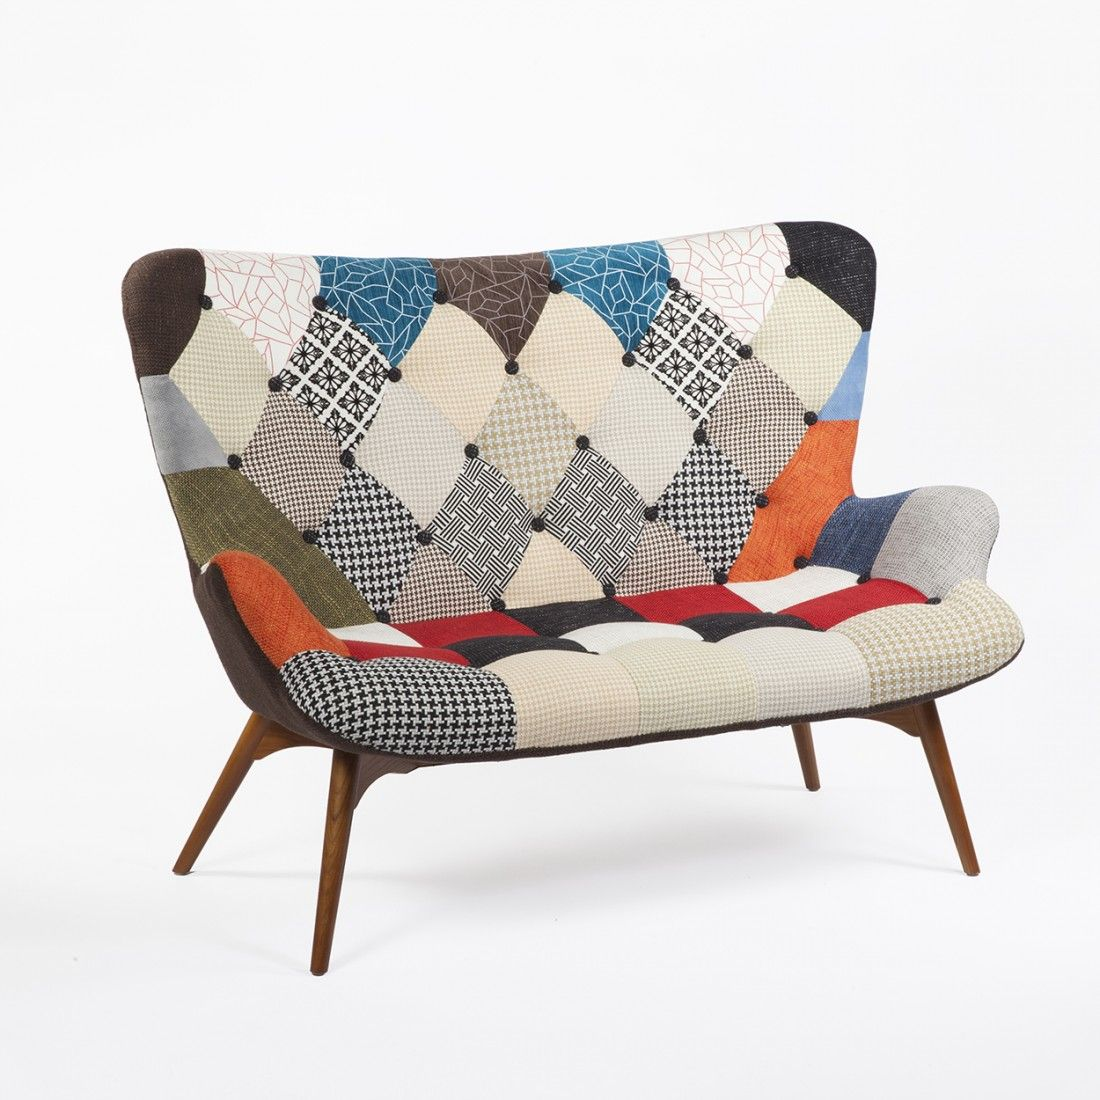 Mid century modern reproduction contour sofa patchwork upholstery inspired by grant featherston